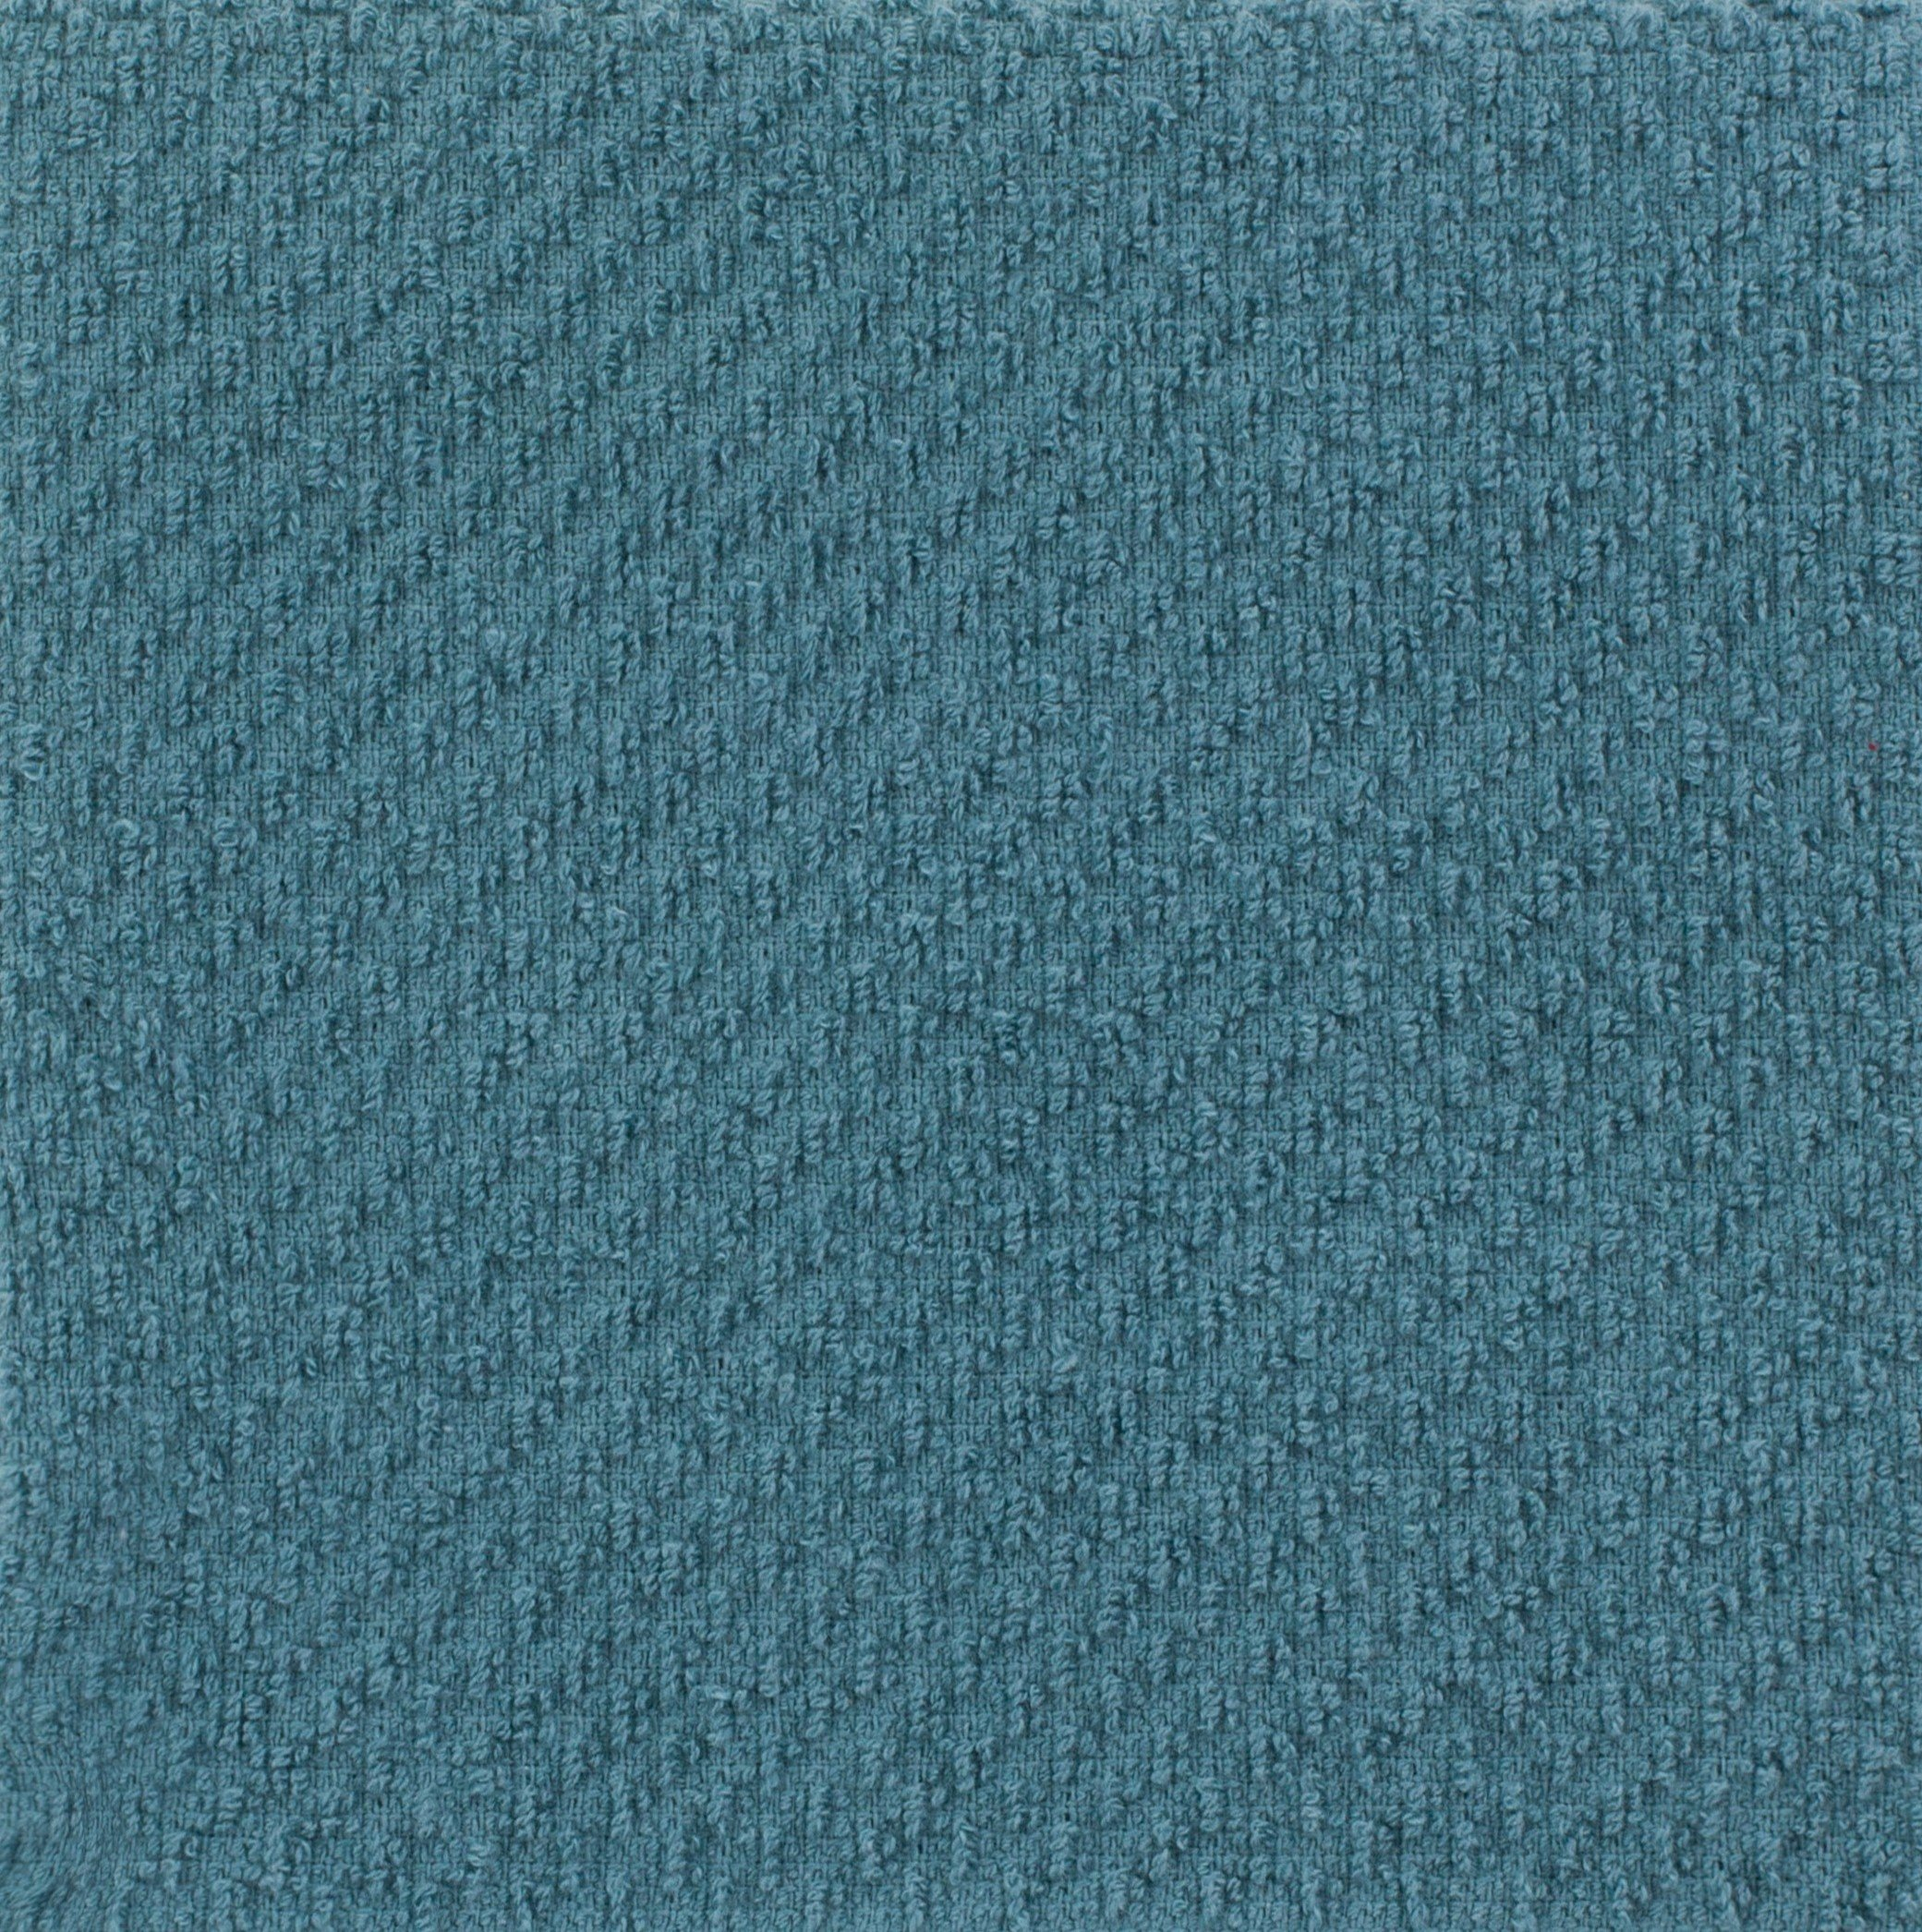 Sticky Toffee Kitchen Towels - blue closeup